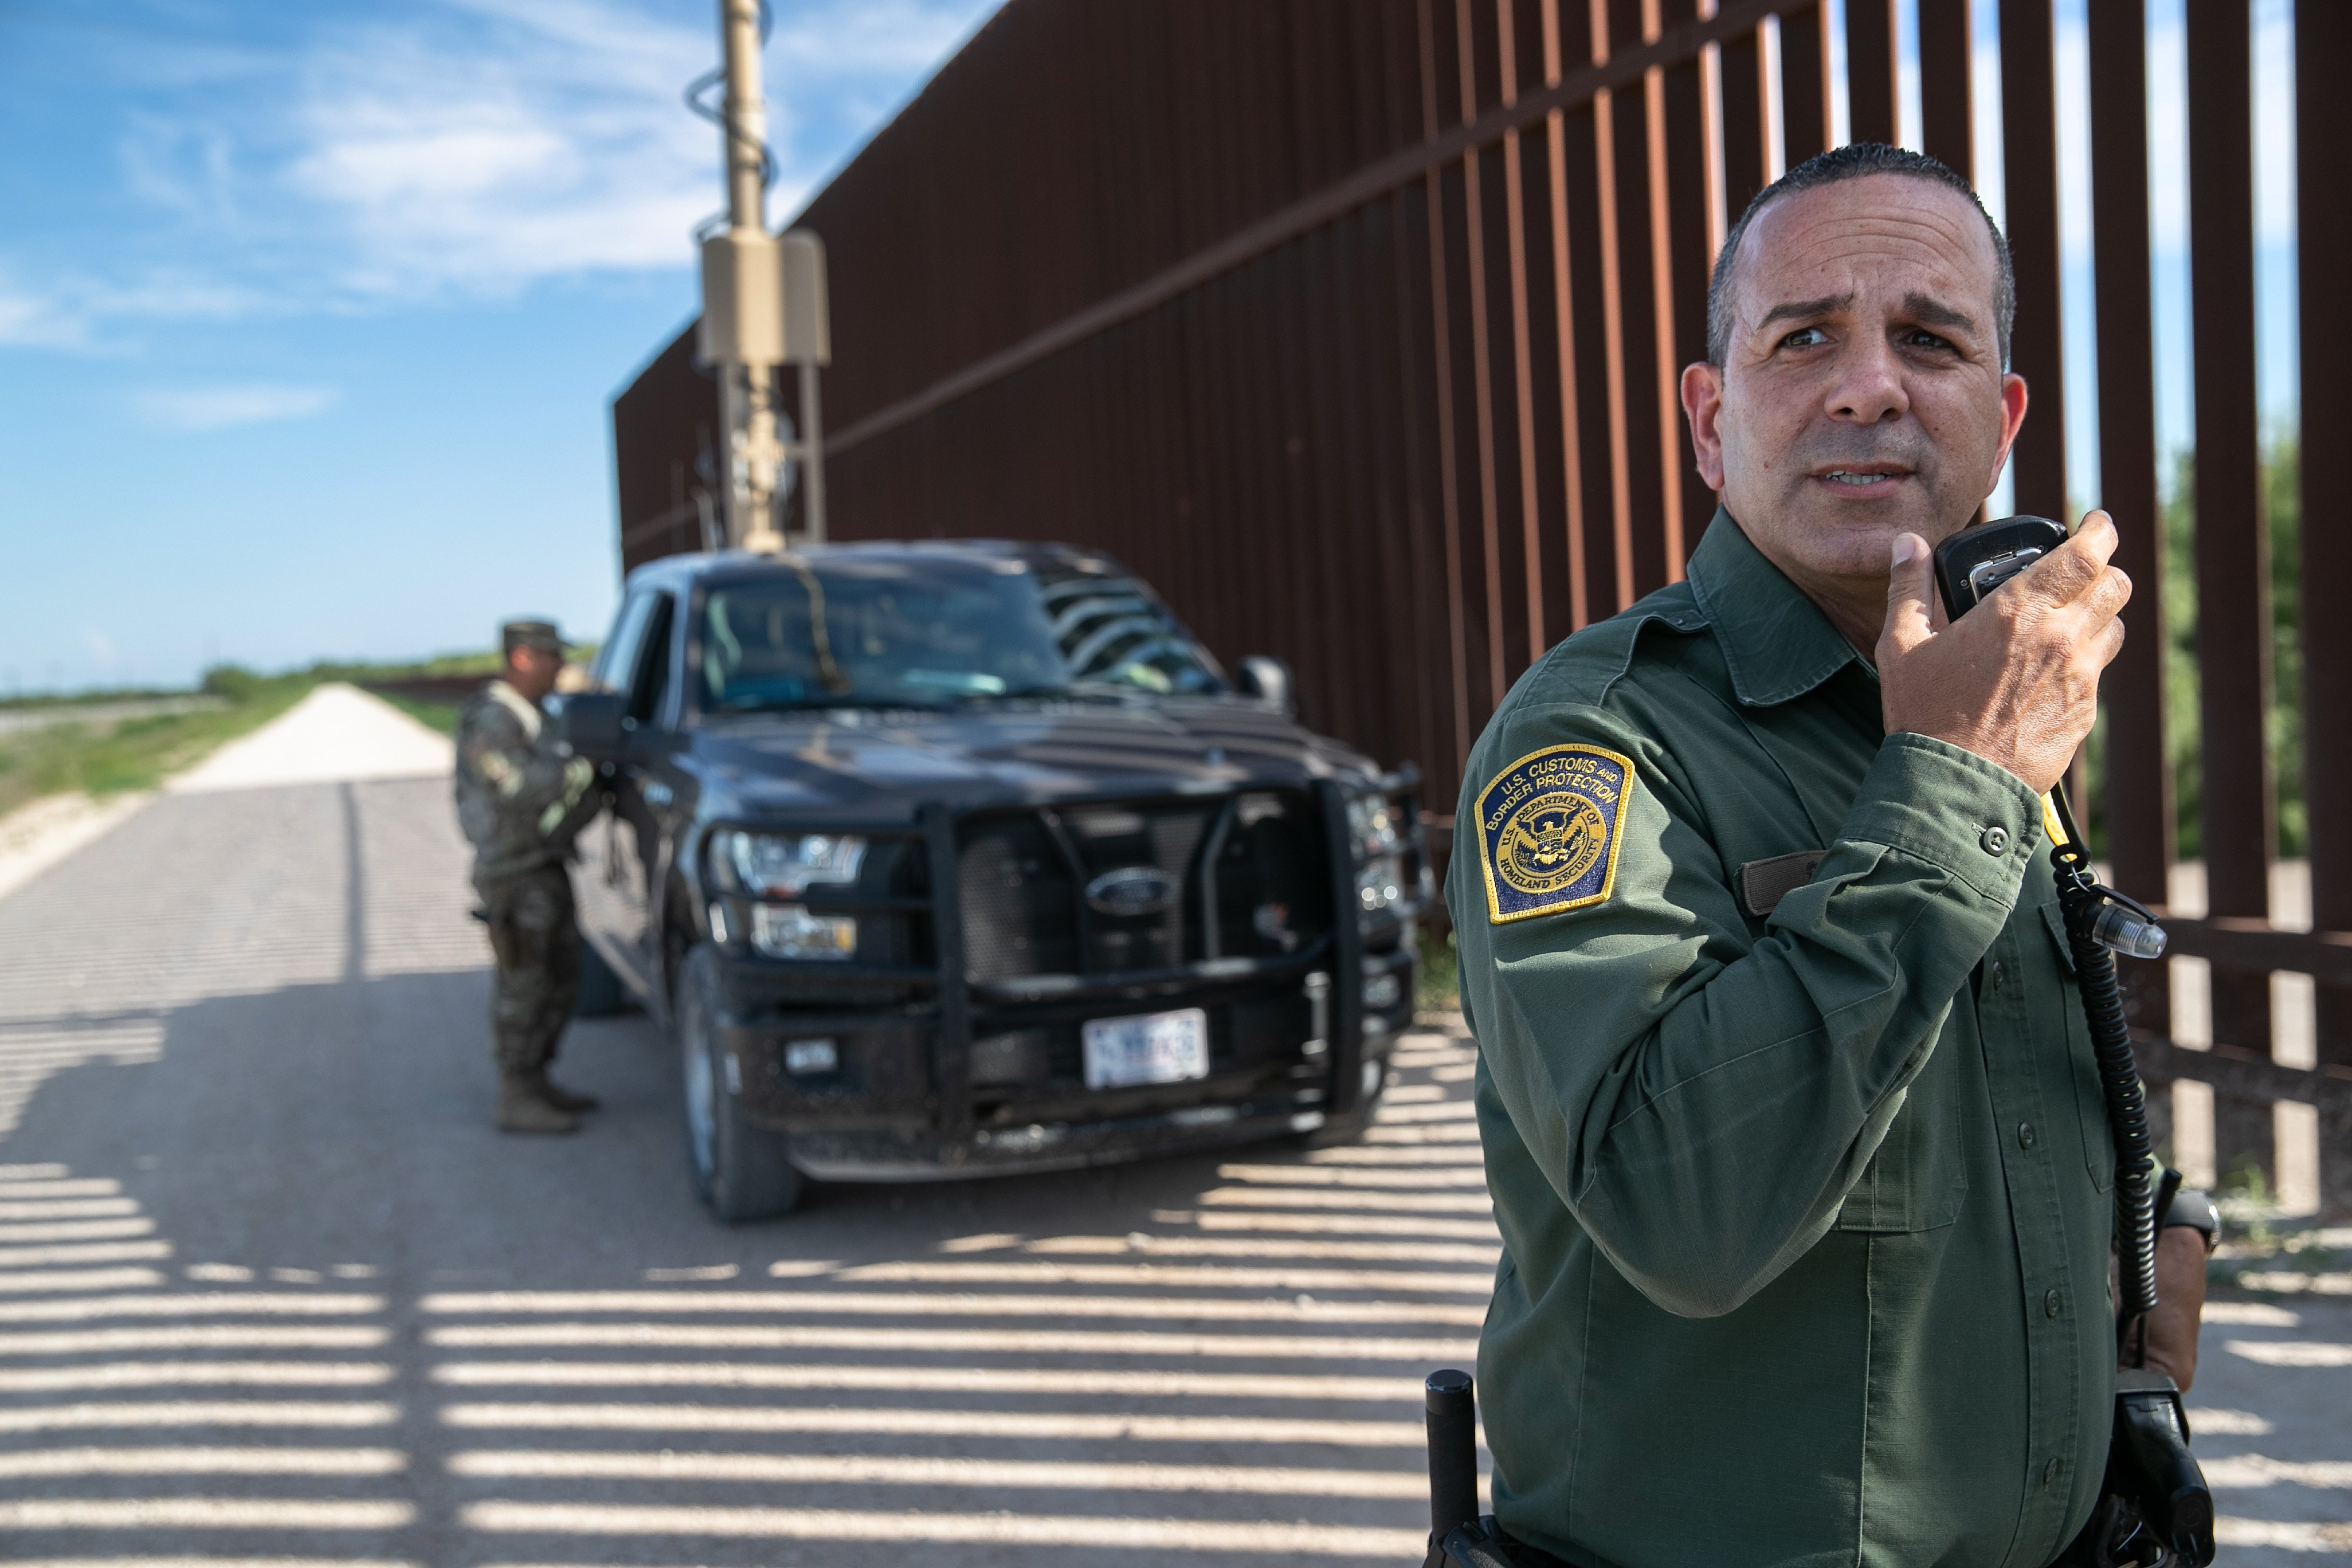 PENITAS, TEXAS - SEPTEMBER 10: U.S. Border Patrol agent Carlos Ruiz spots a pair of undocumented immigrants while coordinating with active duty U.S. Army soldiers near the U.S.-Mexico border fence on September 10, 2019 in Penitas, Texas. U.S. military personnel deployed to the border assist U.S. Border Patrol agents with surveillance, although the soldiers are not authorized to detain immigrants themselves. (Photo by John Moore/Getty Images)